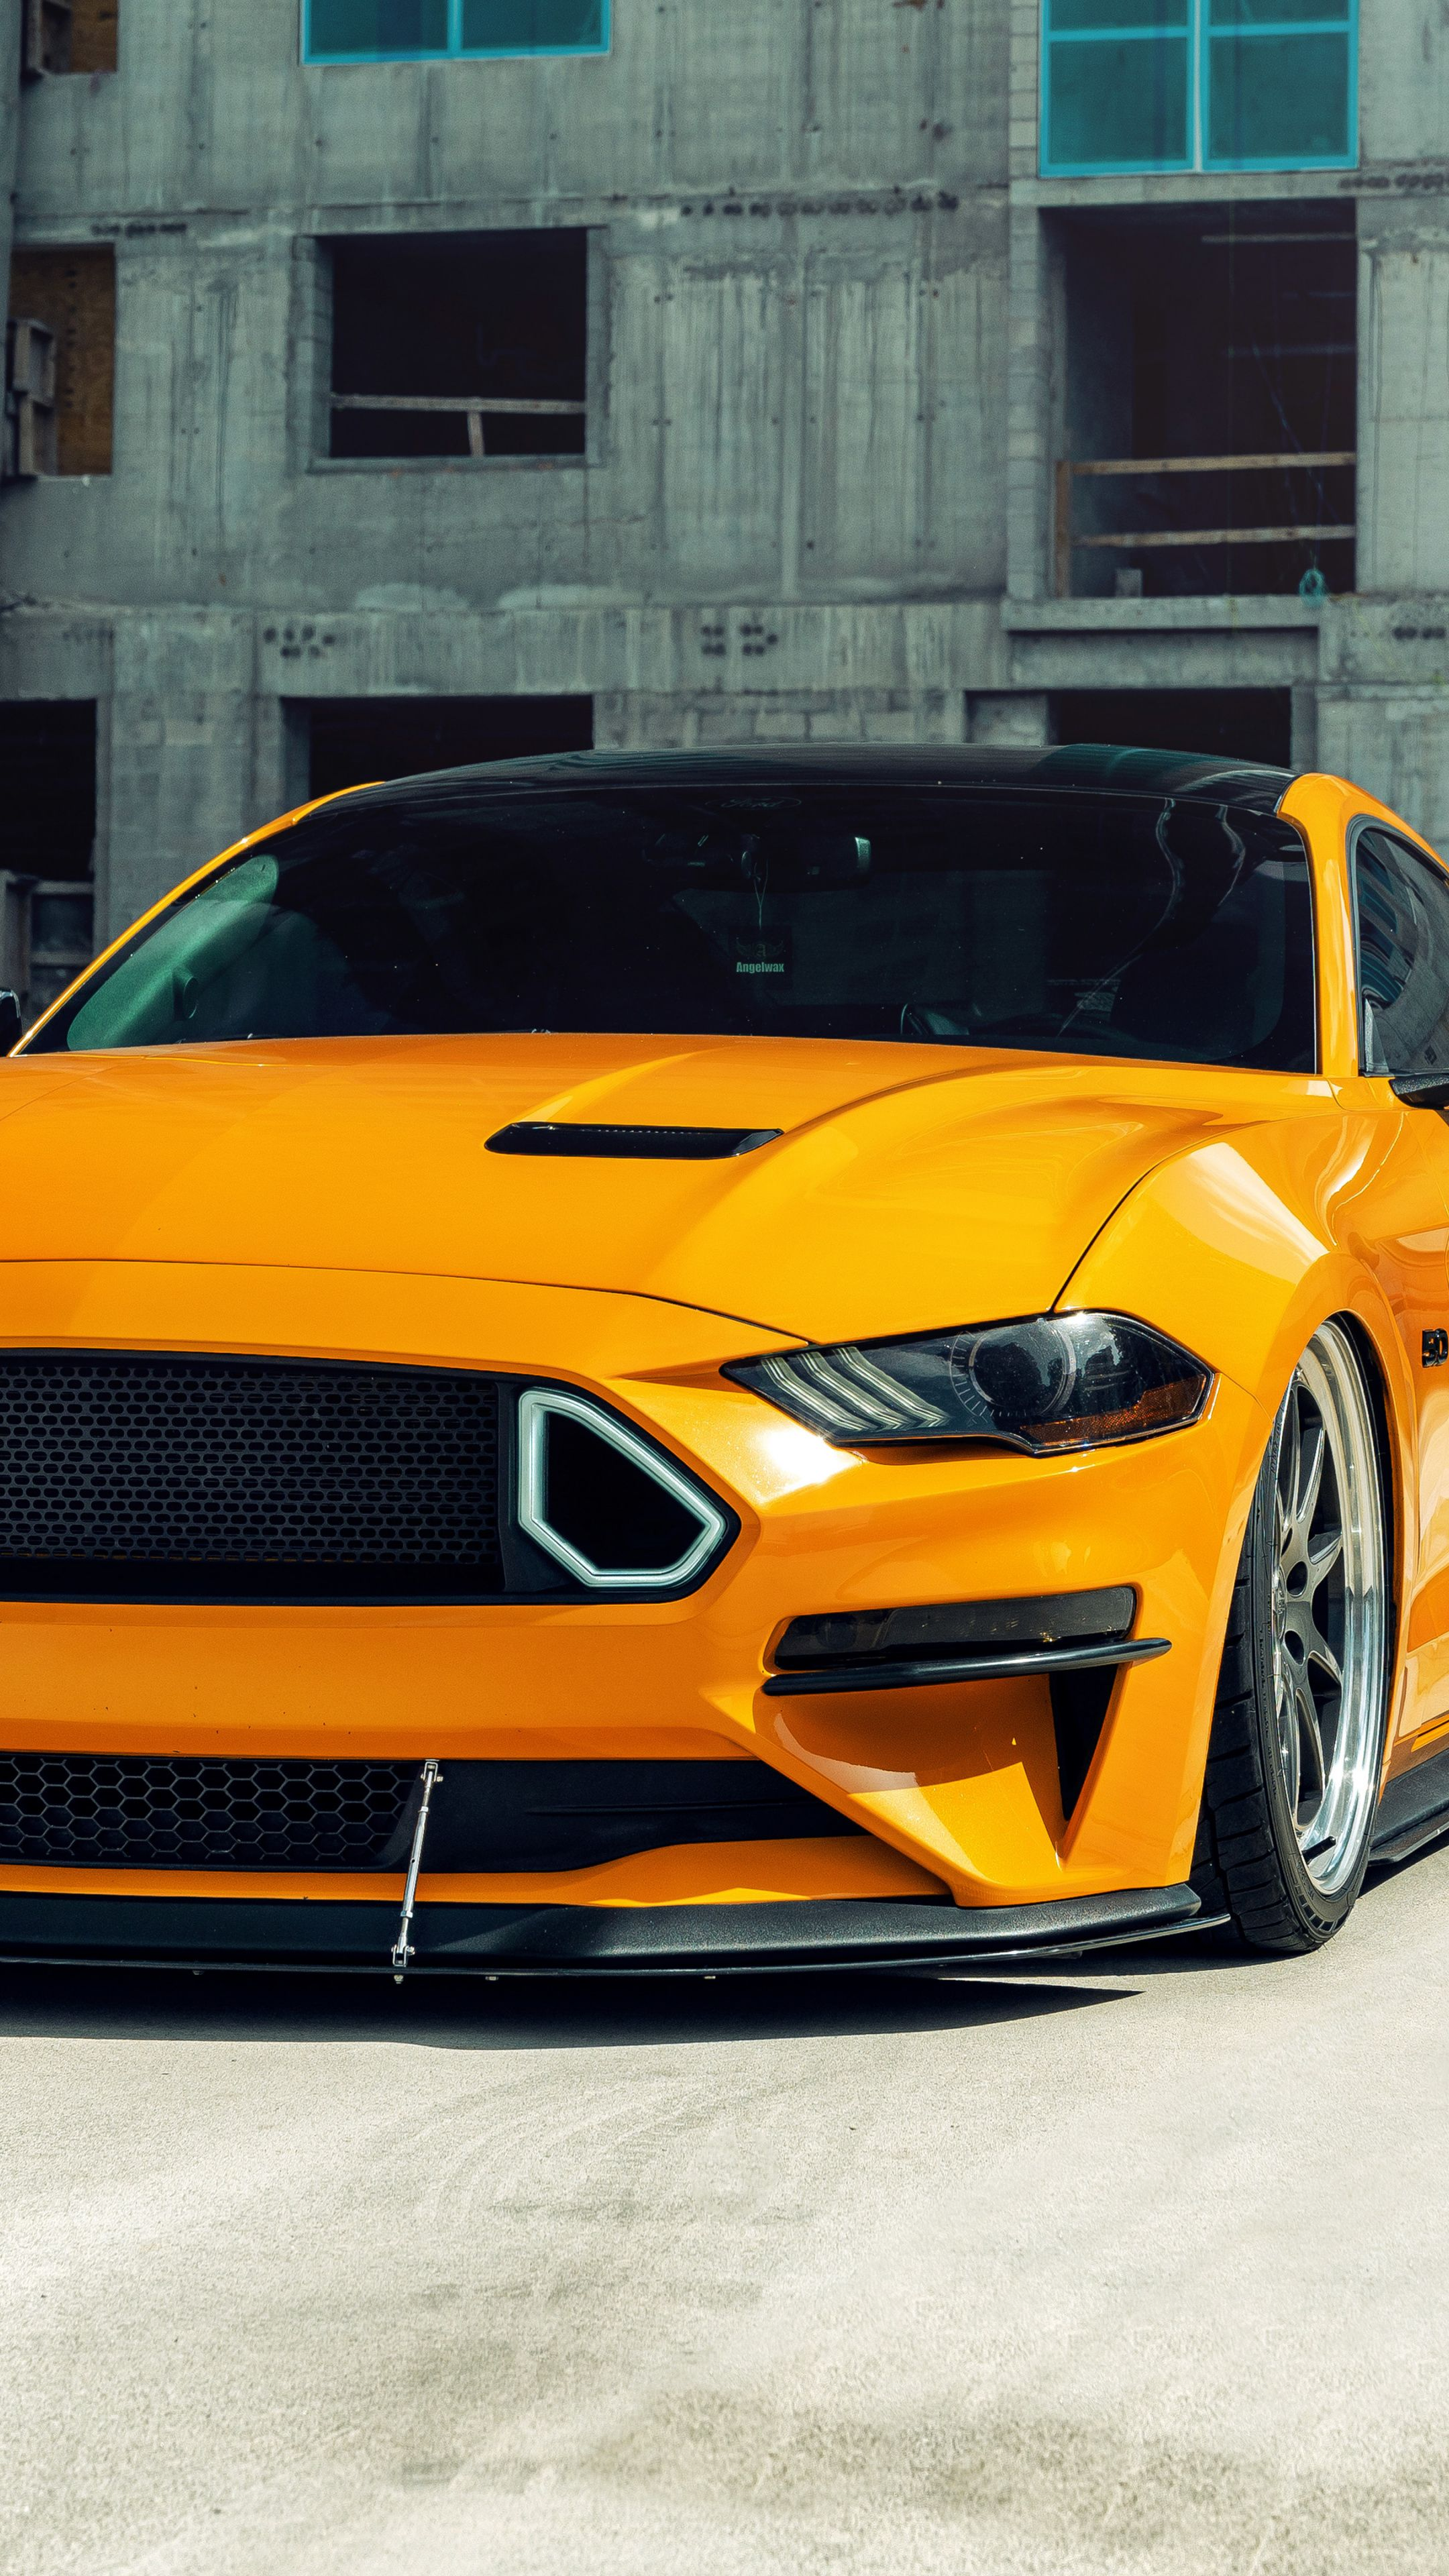 2160x3840 Yellow Ford Mustang Gt 2020 Wallpaper In 2020 Mustang Gt Ford Mustang Gt Mustang